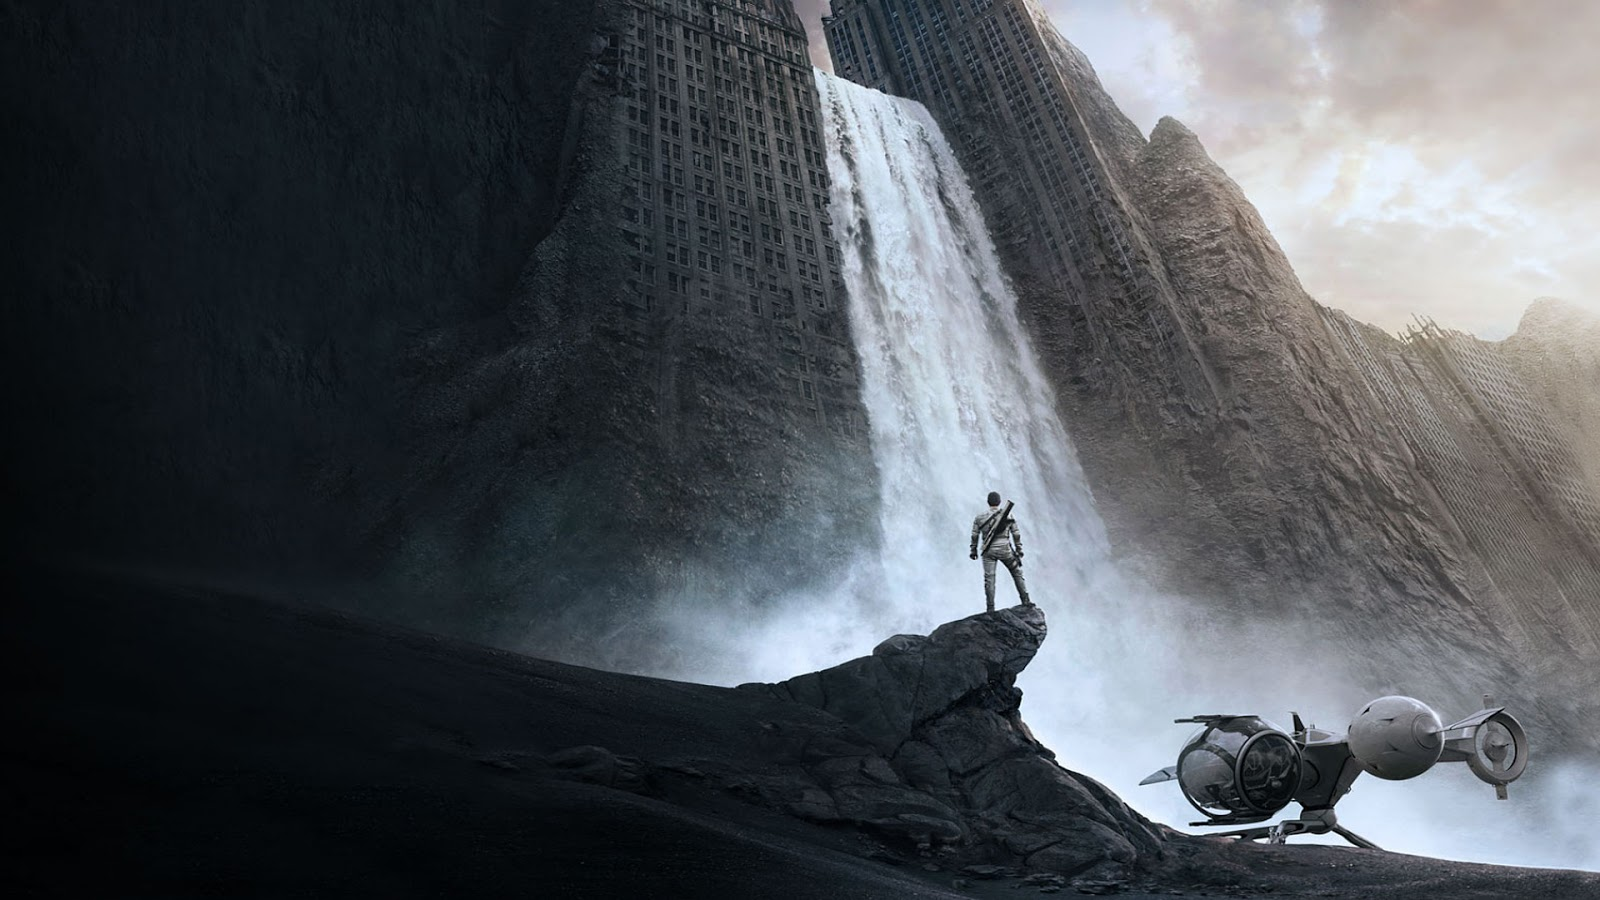 Oblivion wallpaper 1080p wallpapersafari - 1366x768 is 720p or 1080p ...